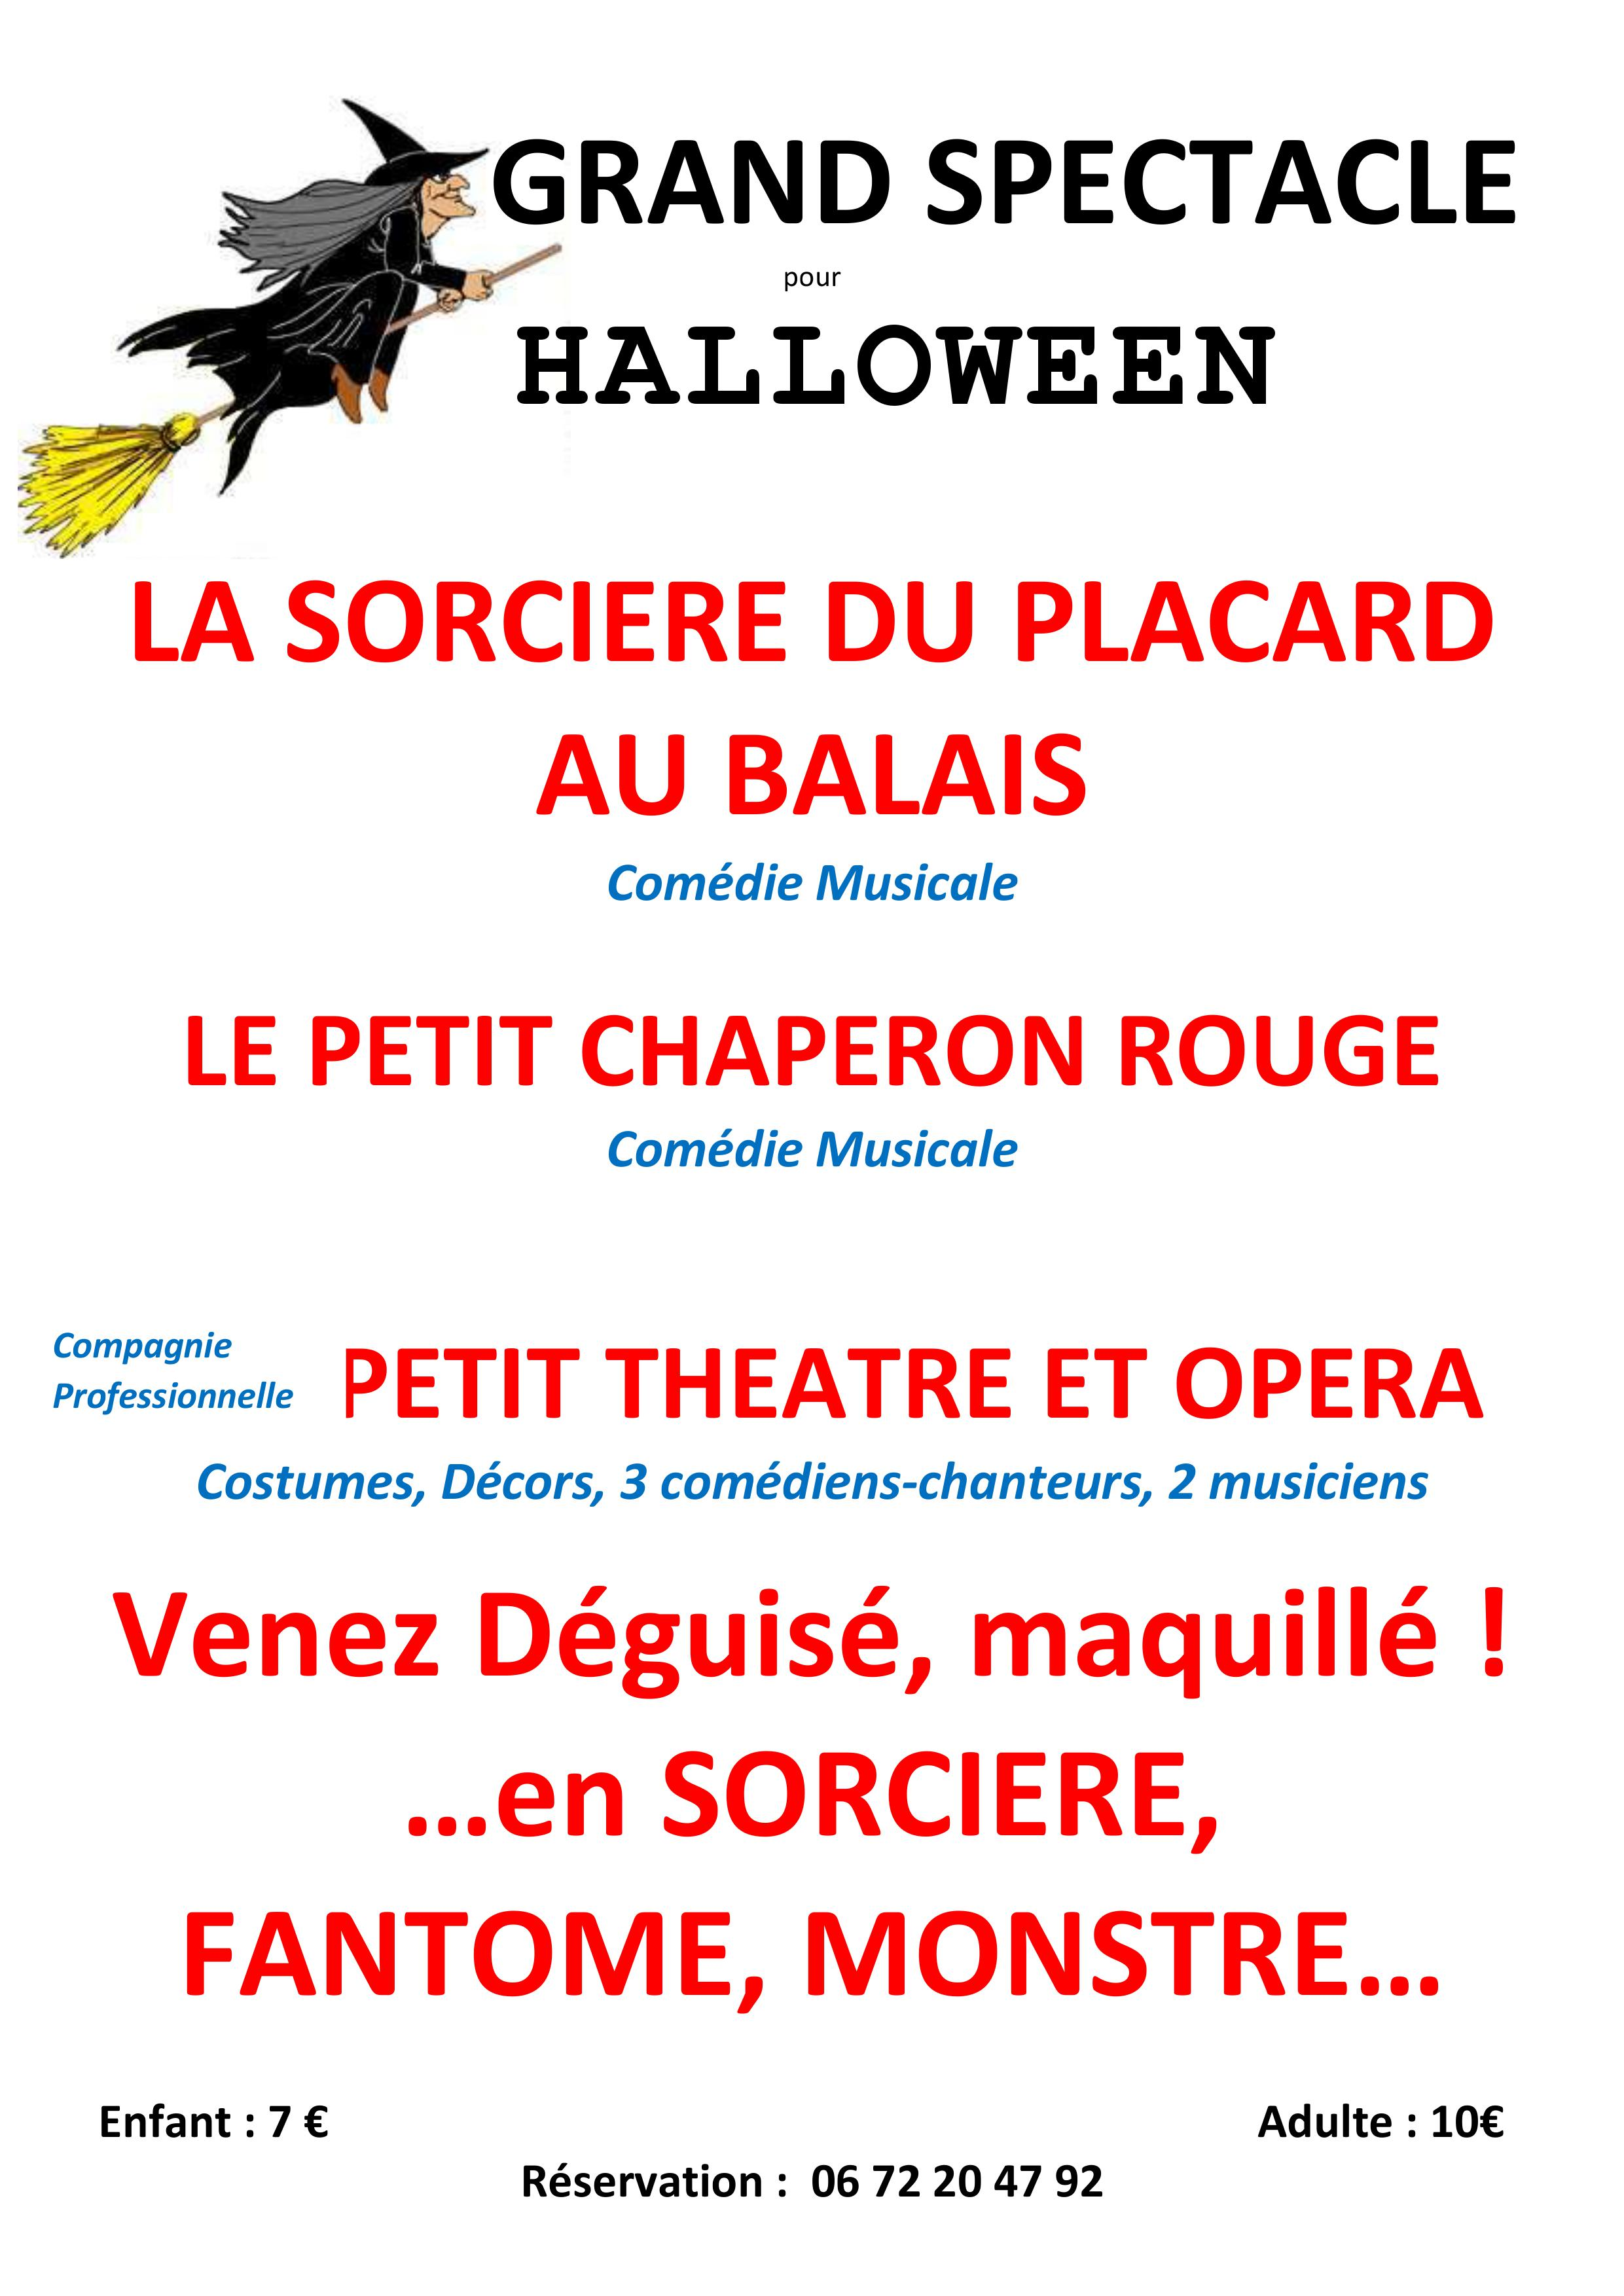 é musicale Grand spectacle pour Halloween